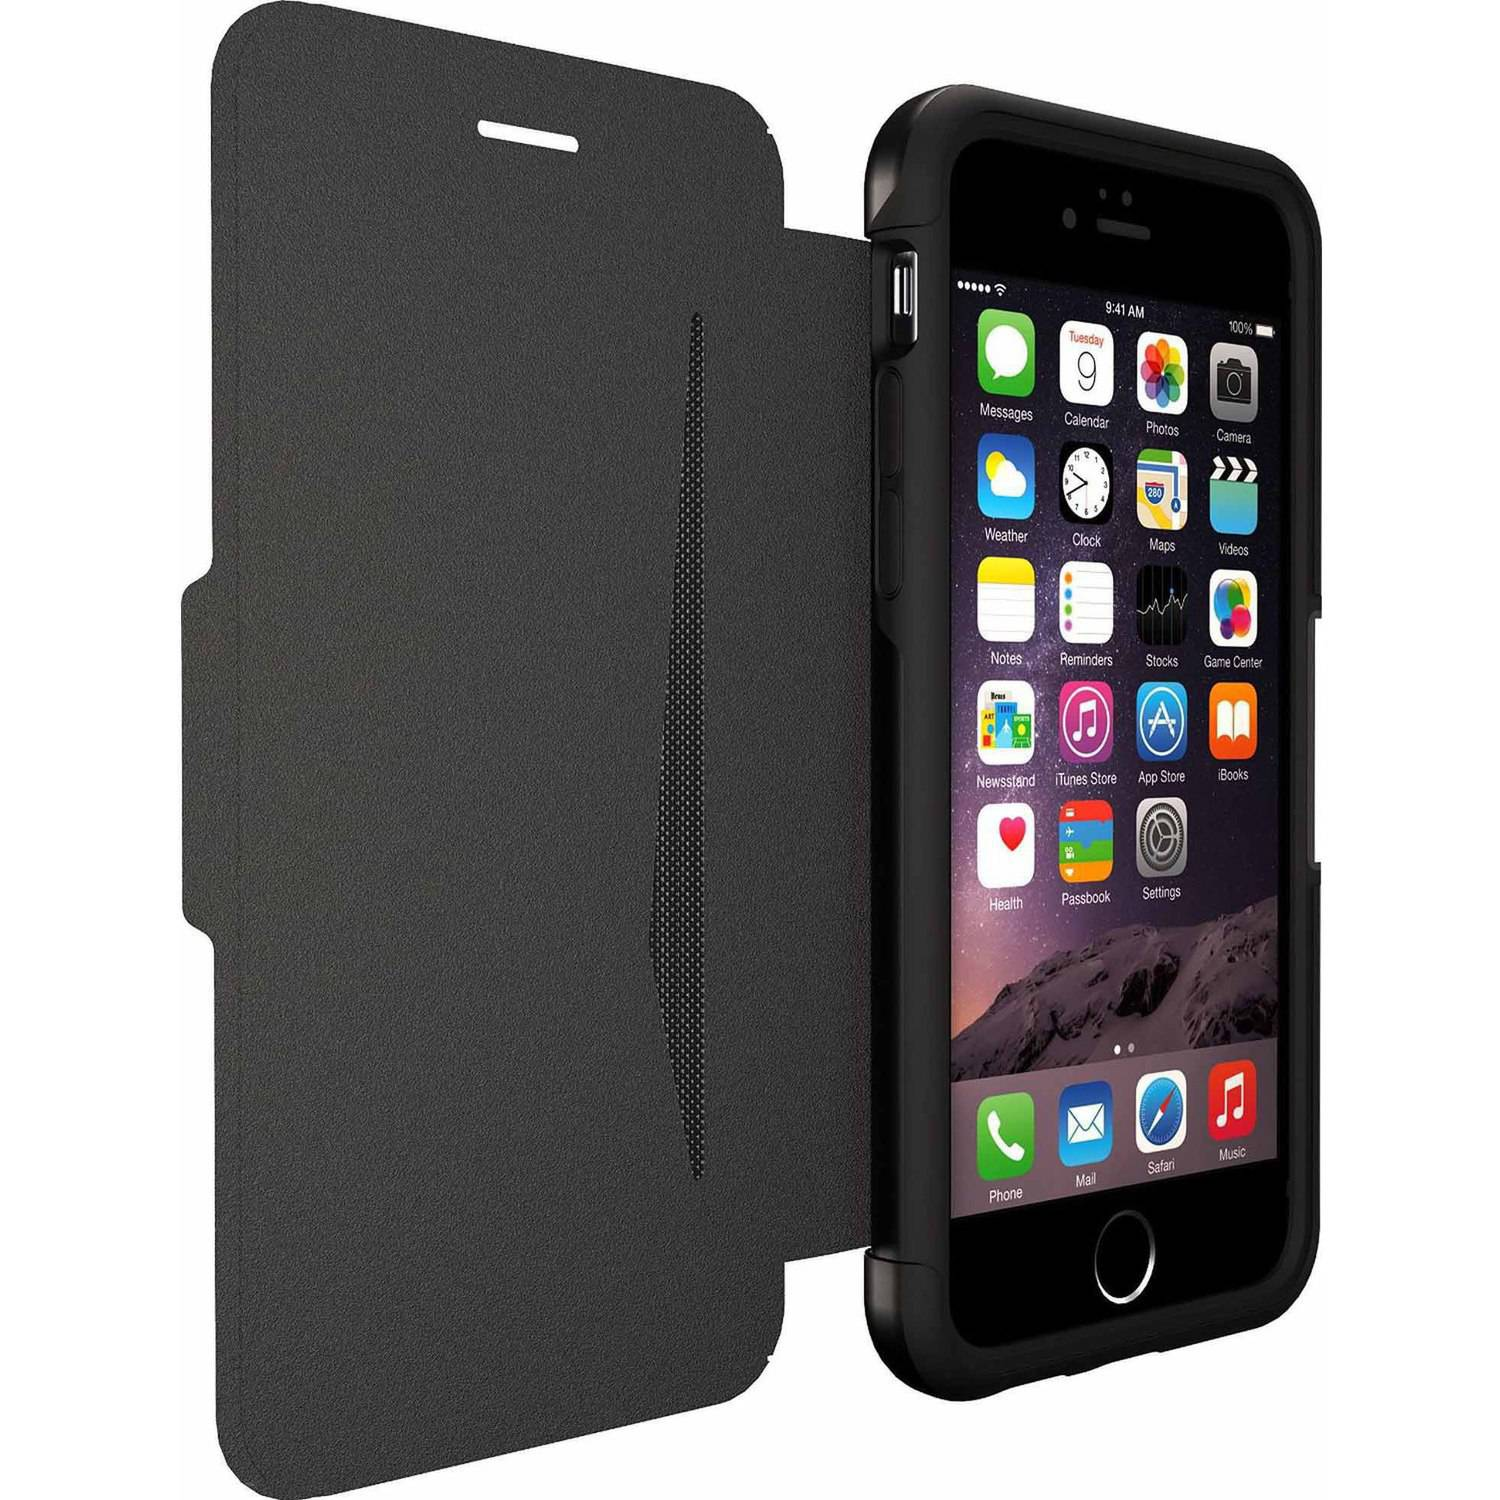 OtterBox Strada Series Carrying Case for Apple iPhone 6, Assorted Colors